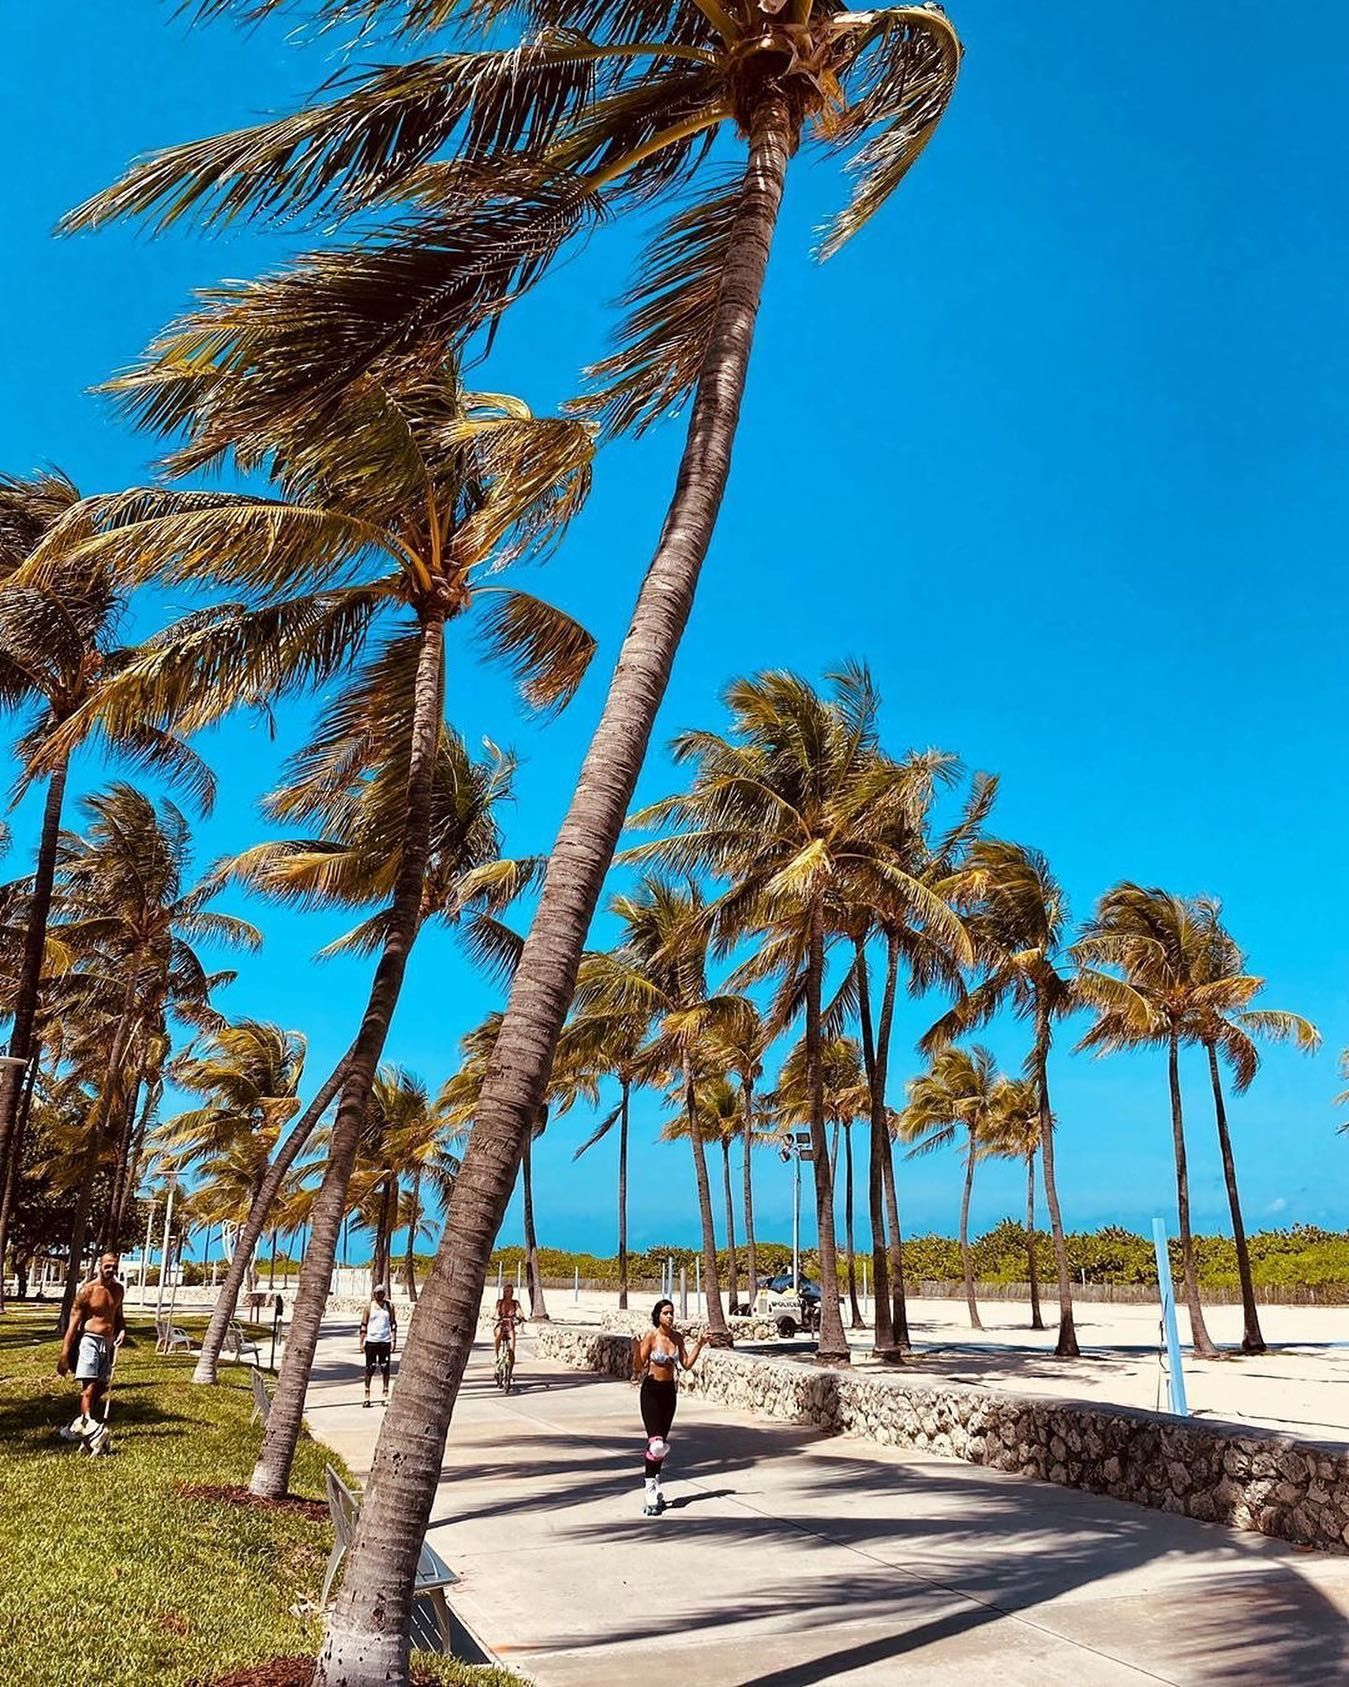 Life is better with palm trees   Tag someone who wants to live in Miami   @smadjita #miamibeach #southbeachmiami #palmtrees #miamiliving #miamilife